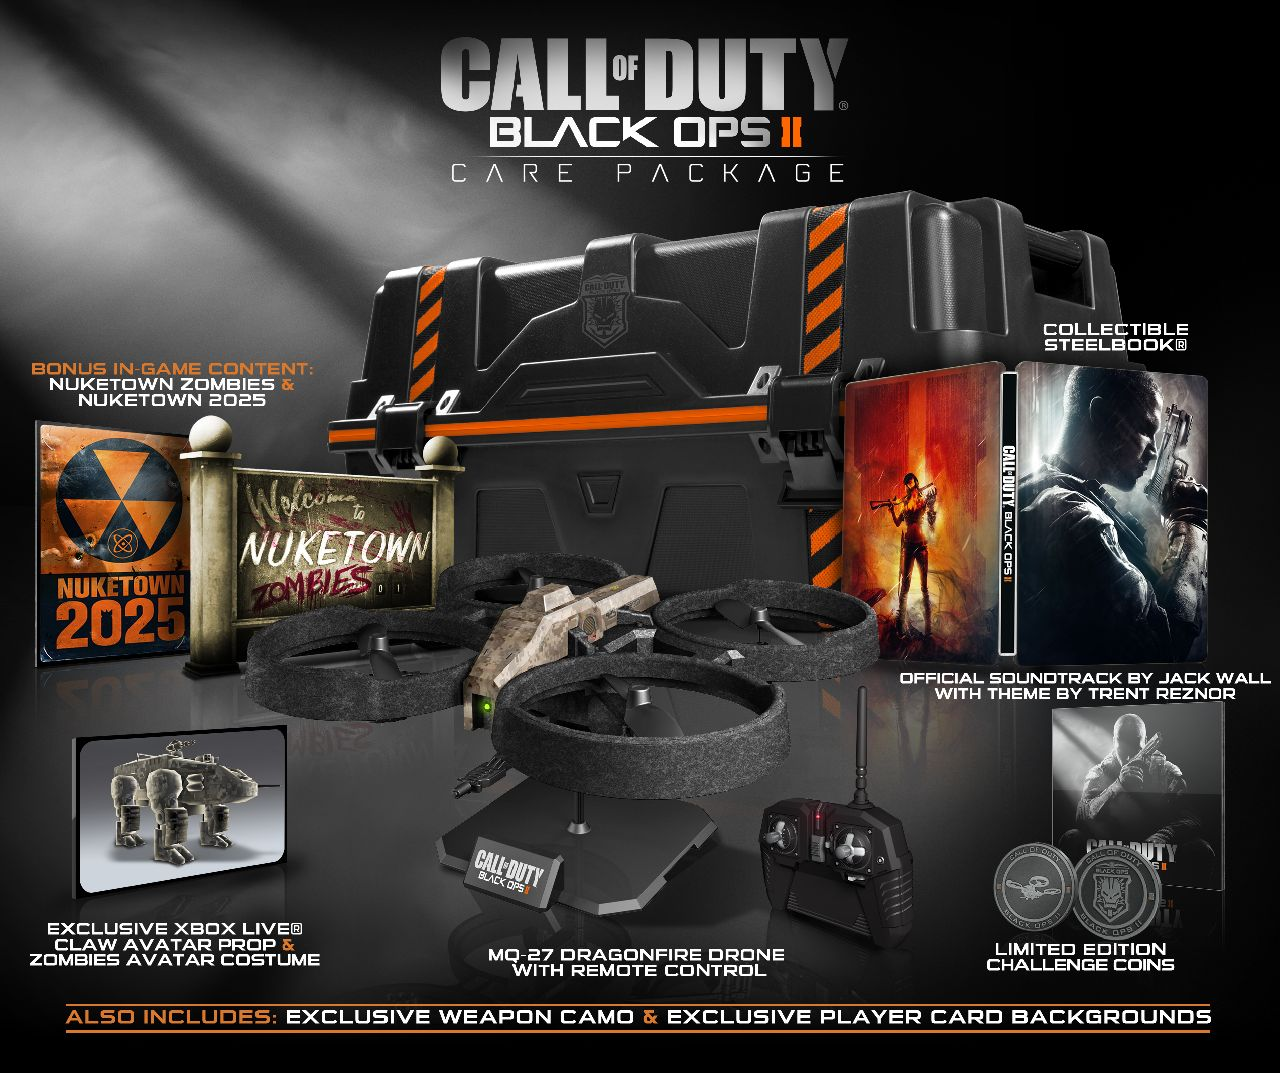 Call of duty black ops ii limited editions unveiled 180 care activision never disappoints when it comes to limited edition call of duty release bundles and for the upcoming black ops ii it actually may have outdone gumiabroncs Gallery